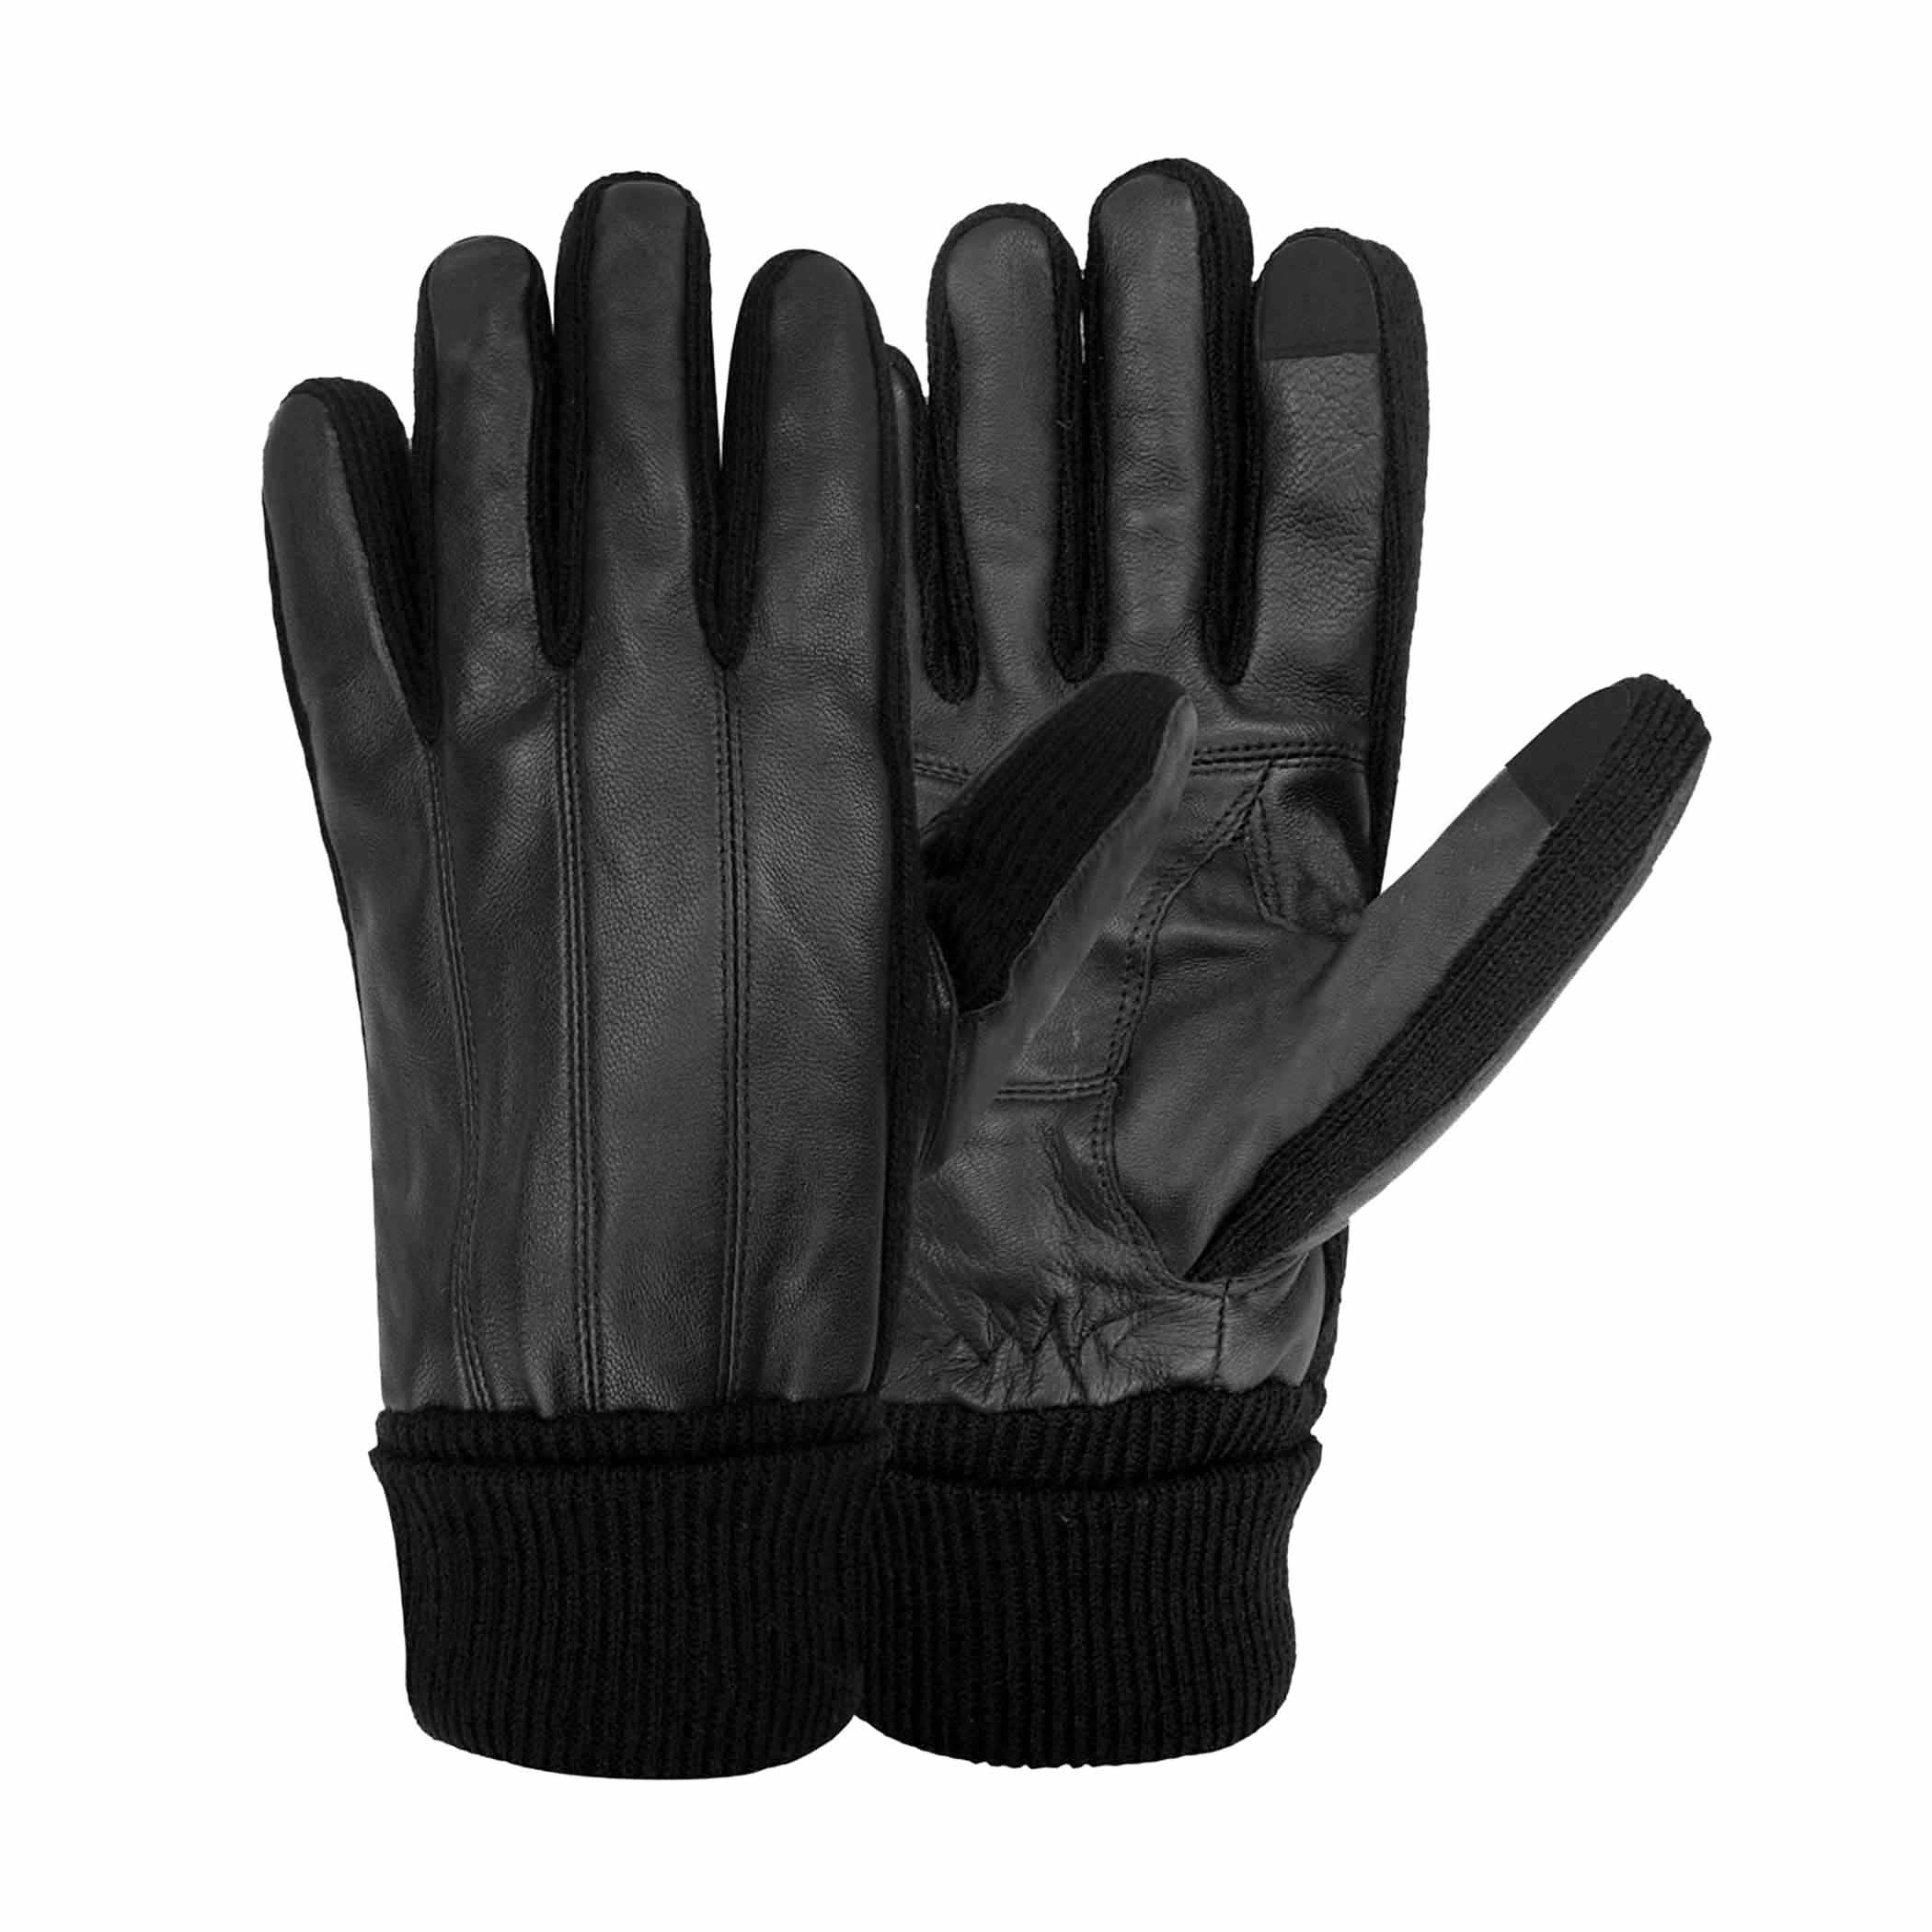 Black gloves mens - Stafford Men 39 S Genuine Leather Thinsulate Lined Texting Gloves Black